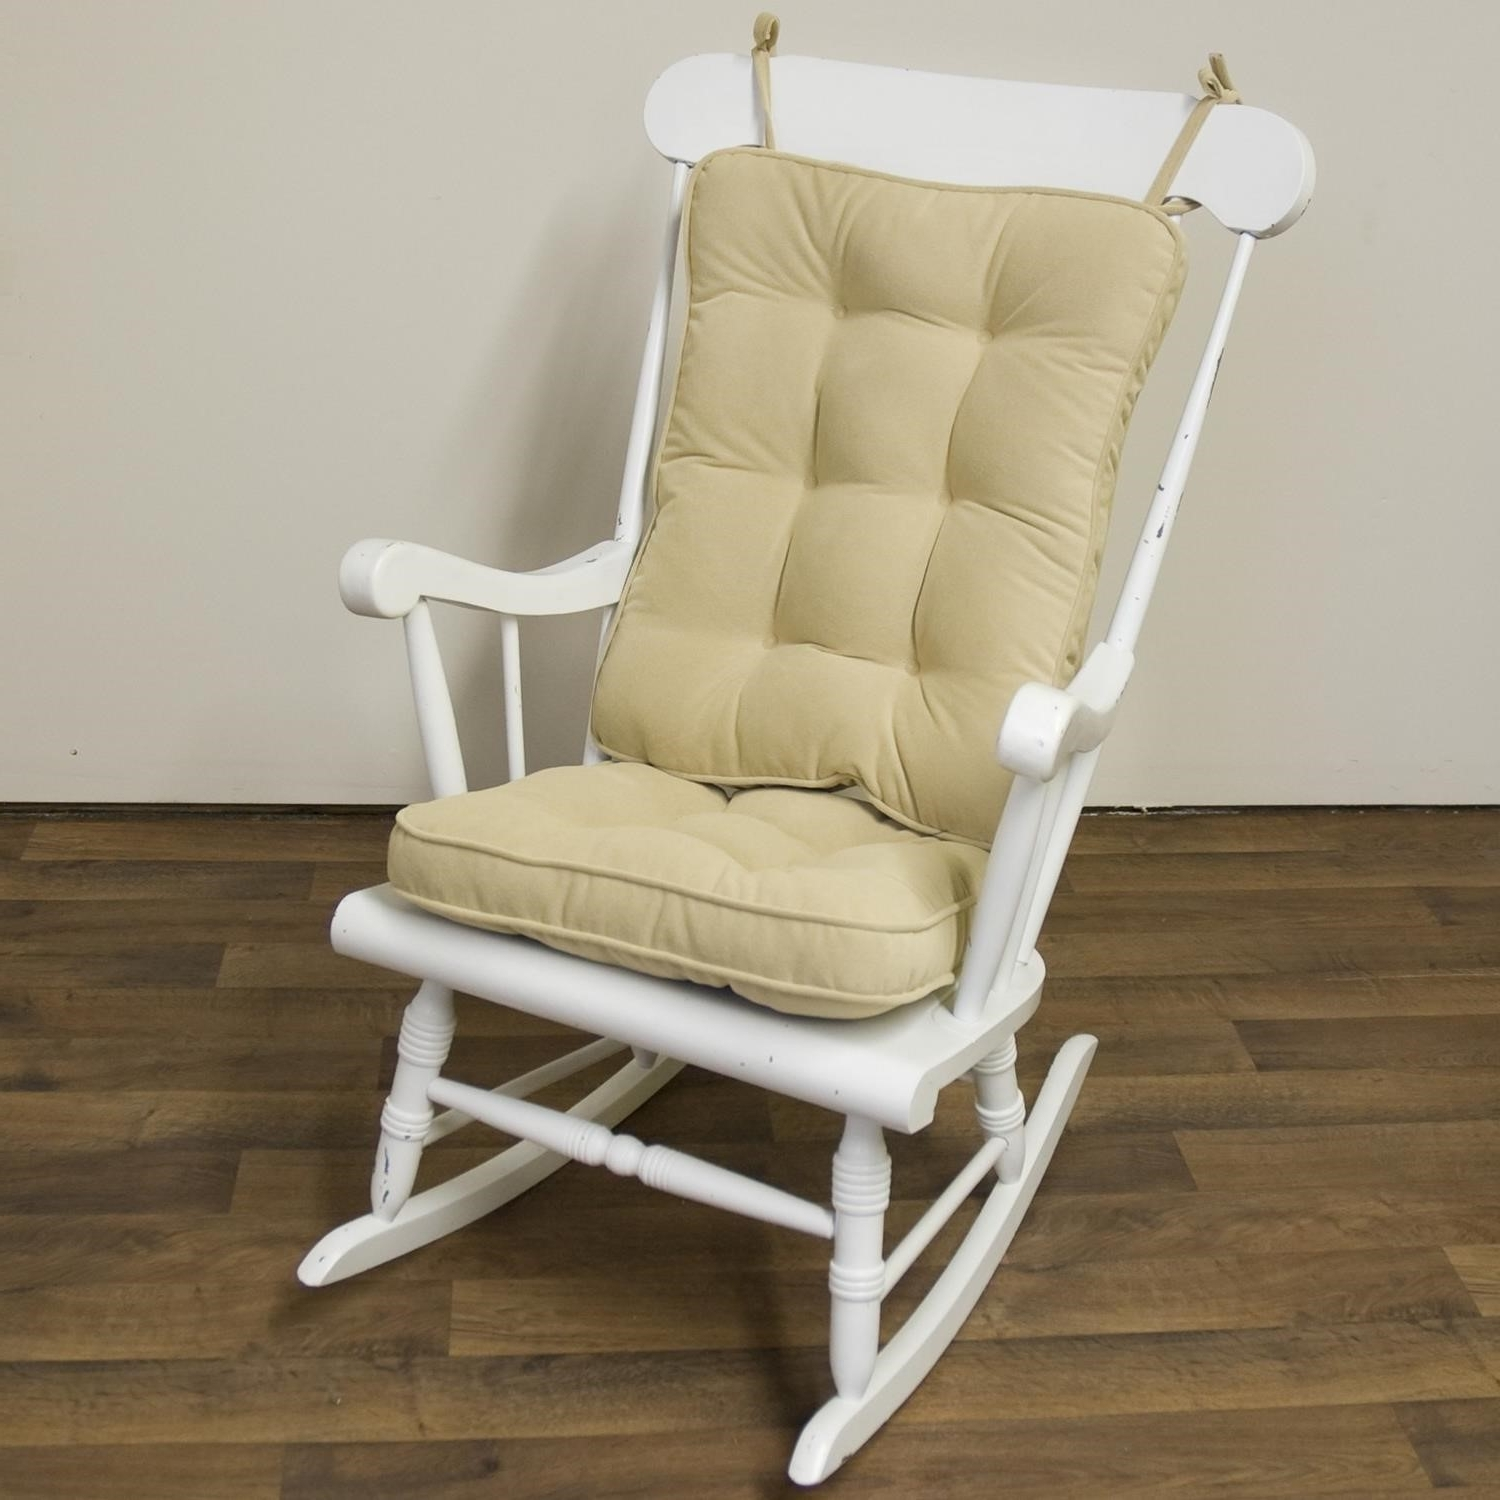 Favorite Rocking Chairs With Cushions Intended For Bedroom: Outstanding Design Of Rocking Chair Cushions For Nursery (View 2 of 15)